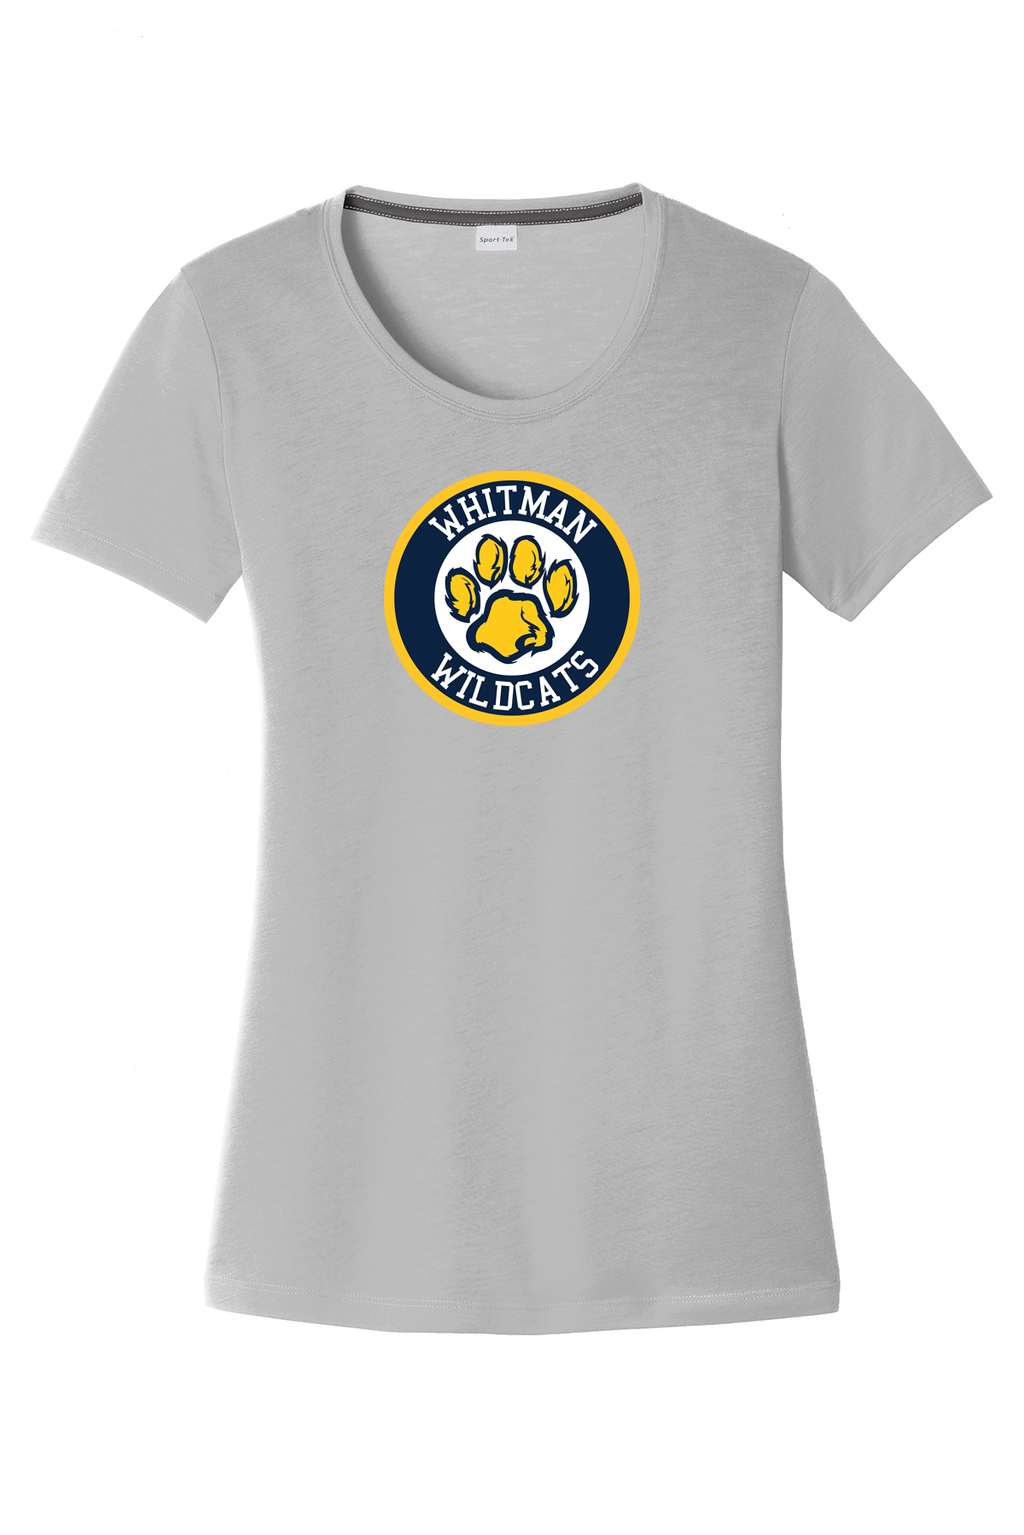 Whitman Wildcats Women's CottonTouch Performance T-Shirt